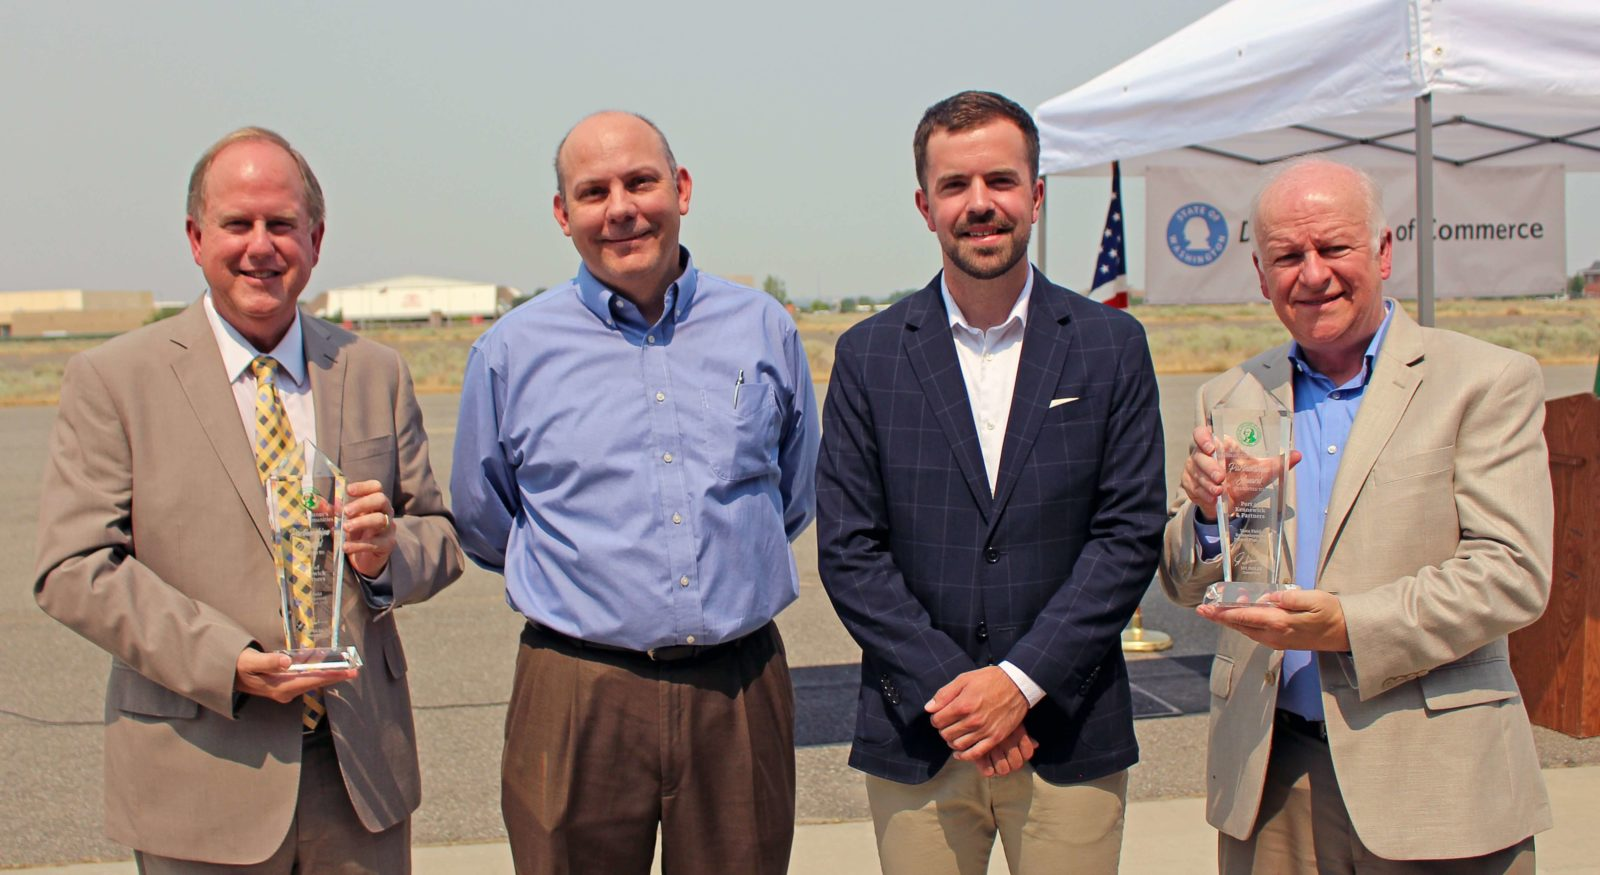 Governor's staff presents Smart Partnership Award for Vista Field planning to Port and City of Kennewick.